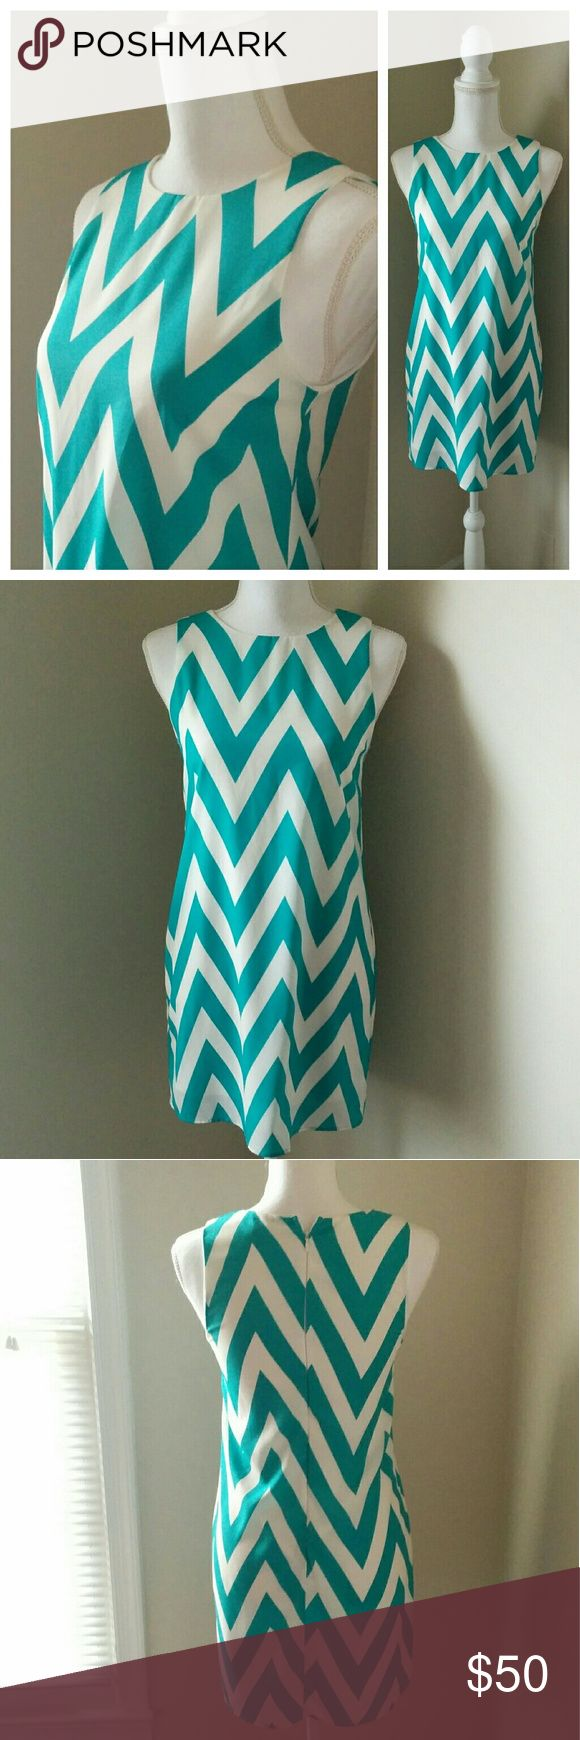 Everly Turquoise Chevron Sleeveless Shift Dress Everly turquoise and white chevron print shift style dress with a back zipper in a size small. The fabric has a slight metallic sheen to it, very cute. Everly Dresses Mini